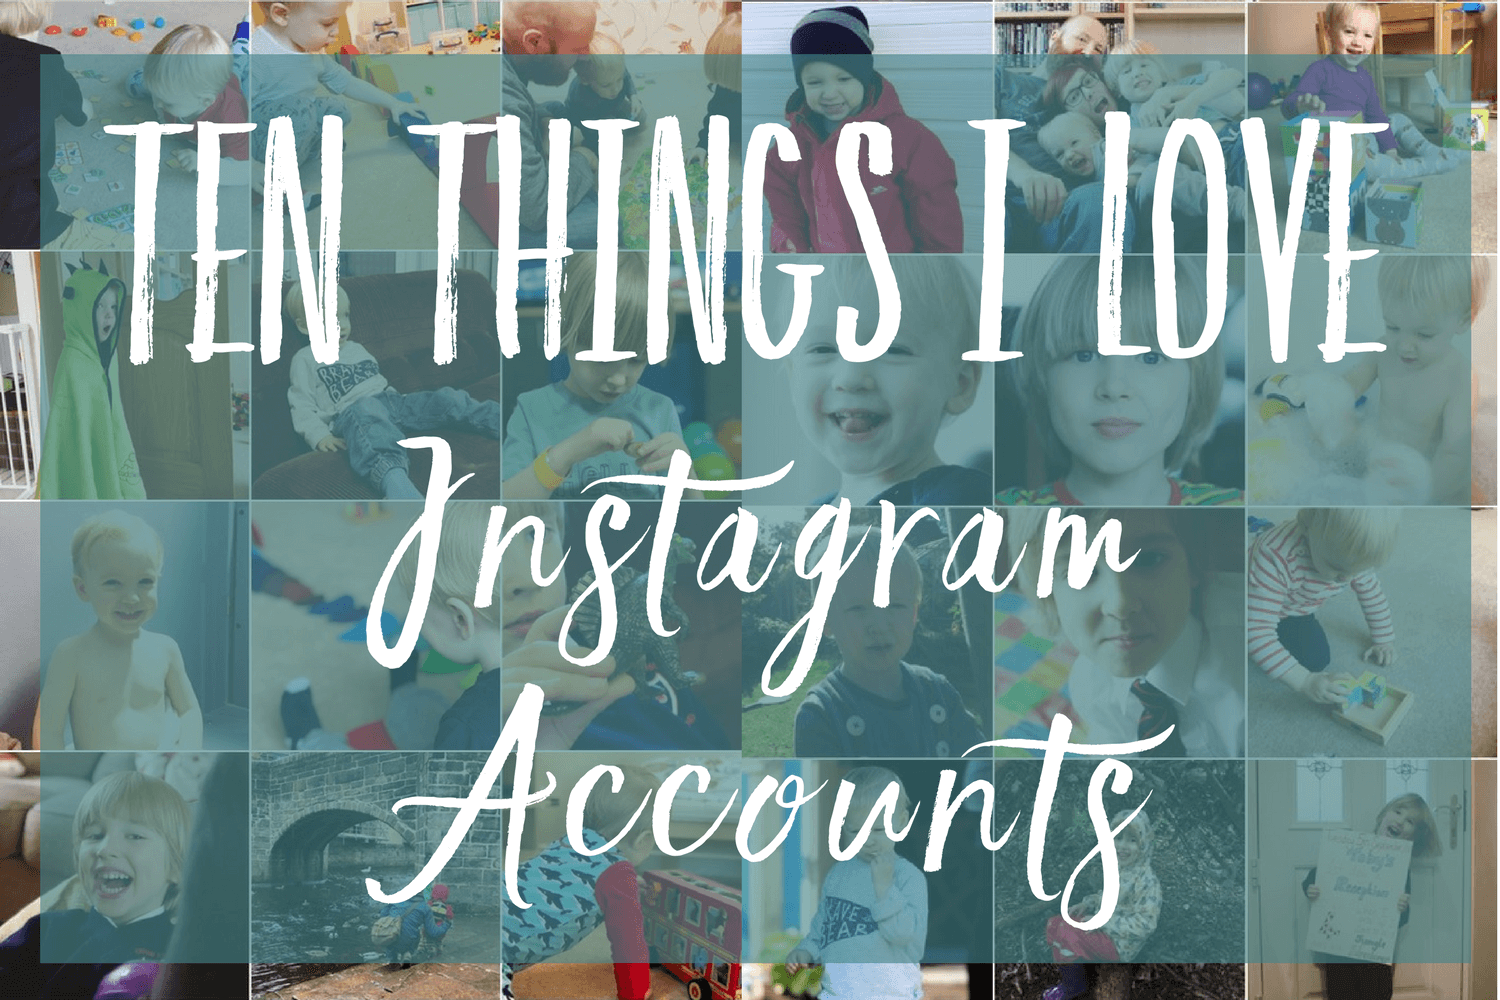 Ten things I love - Instagram accounts